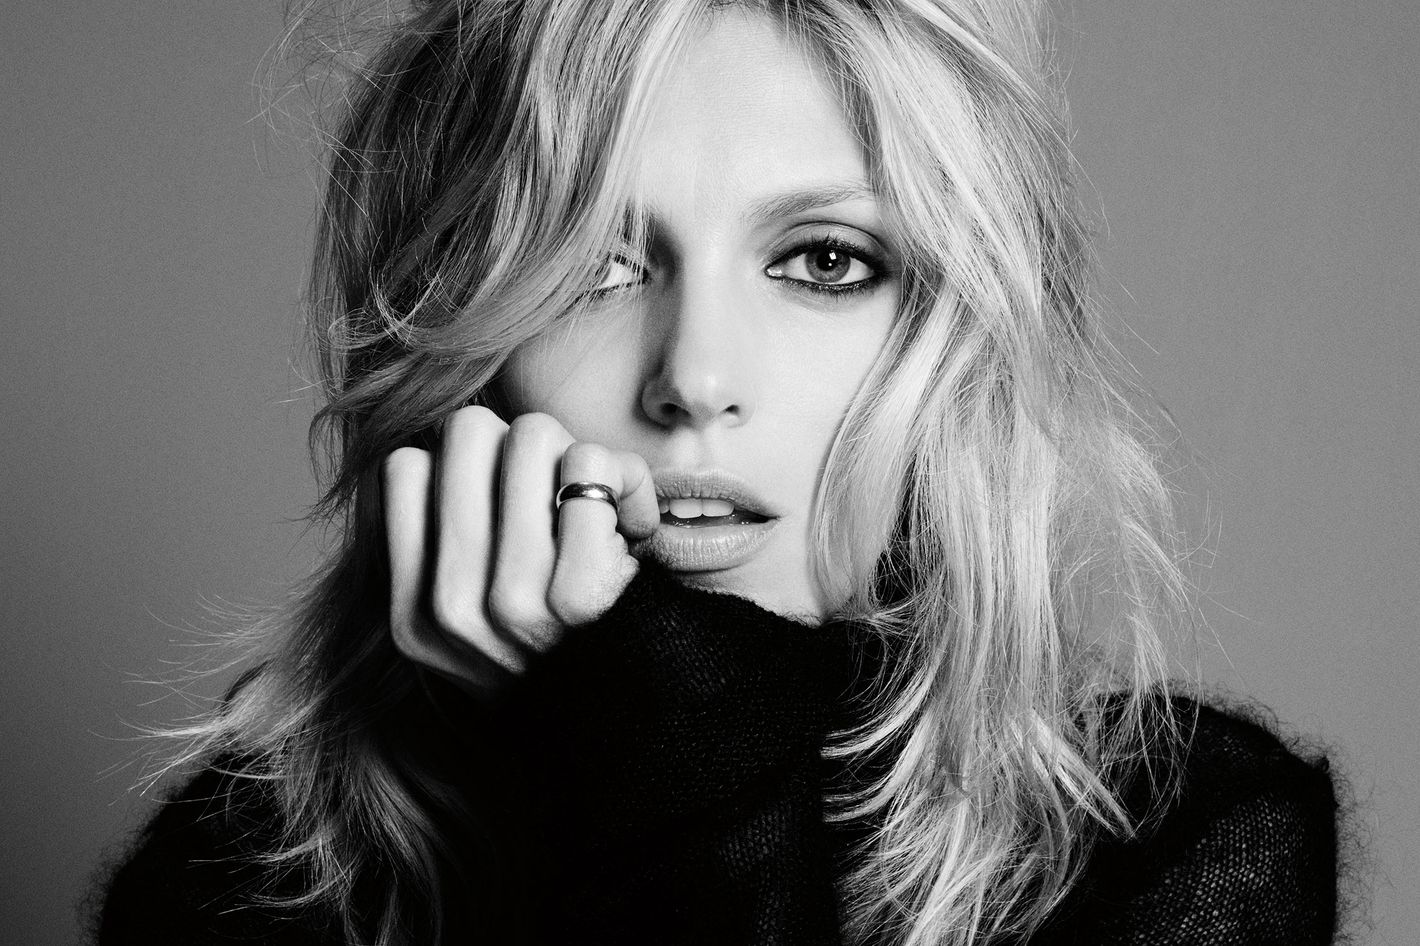 Exclusive: Anja Rubik's Entire Beauty Routine, Right Here Exclusive: Anja Rubik's Entire Beauty Routine, Right Here new pictures